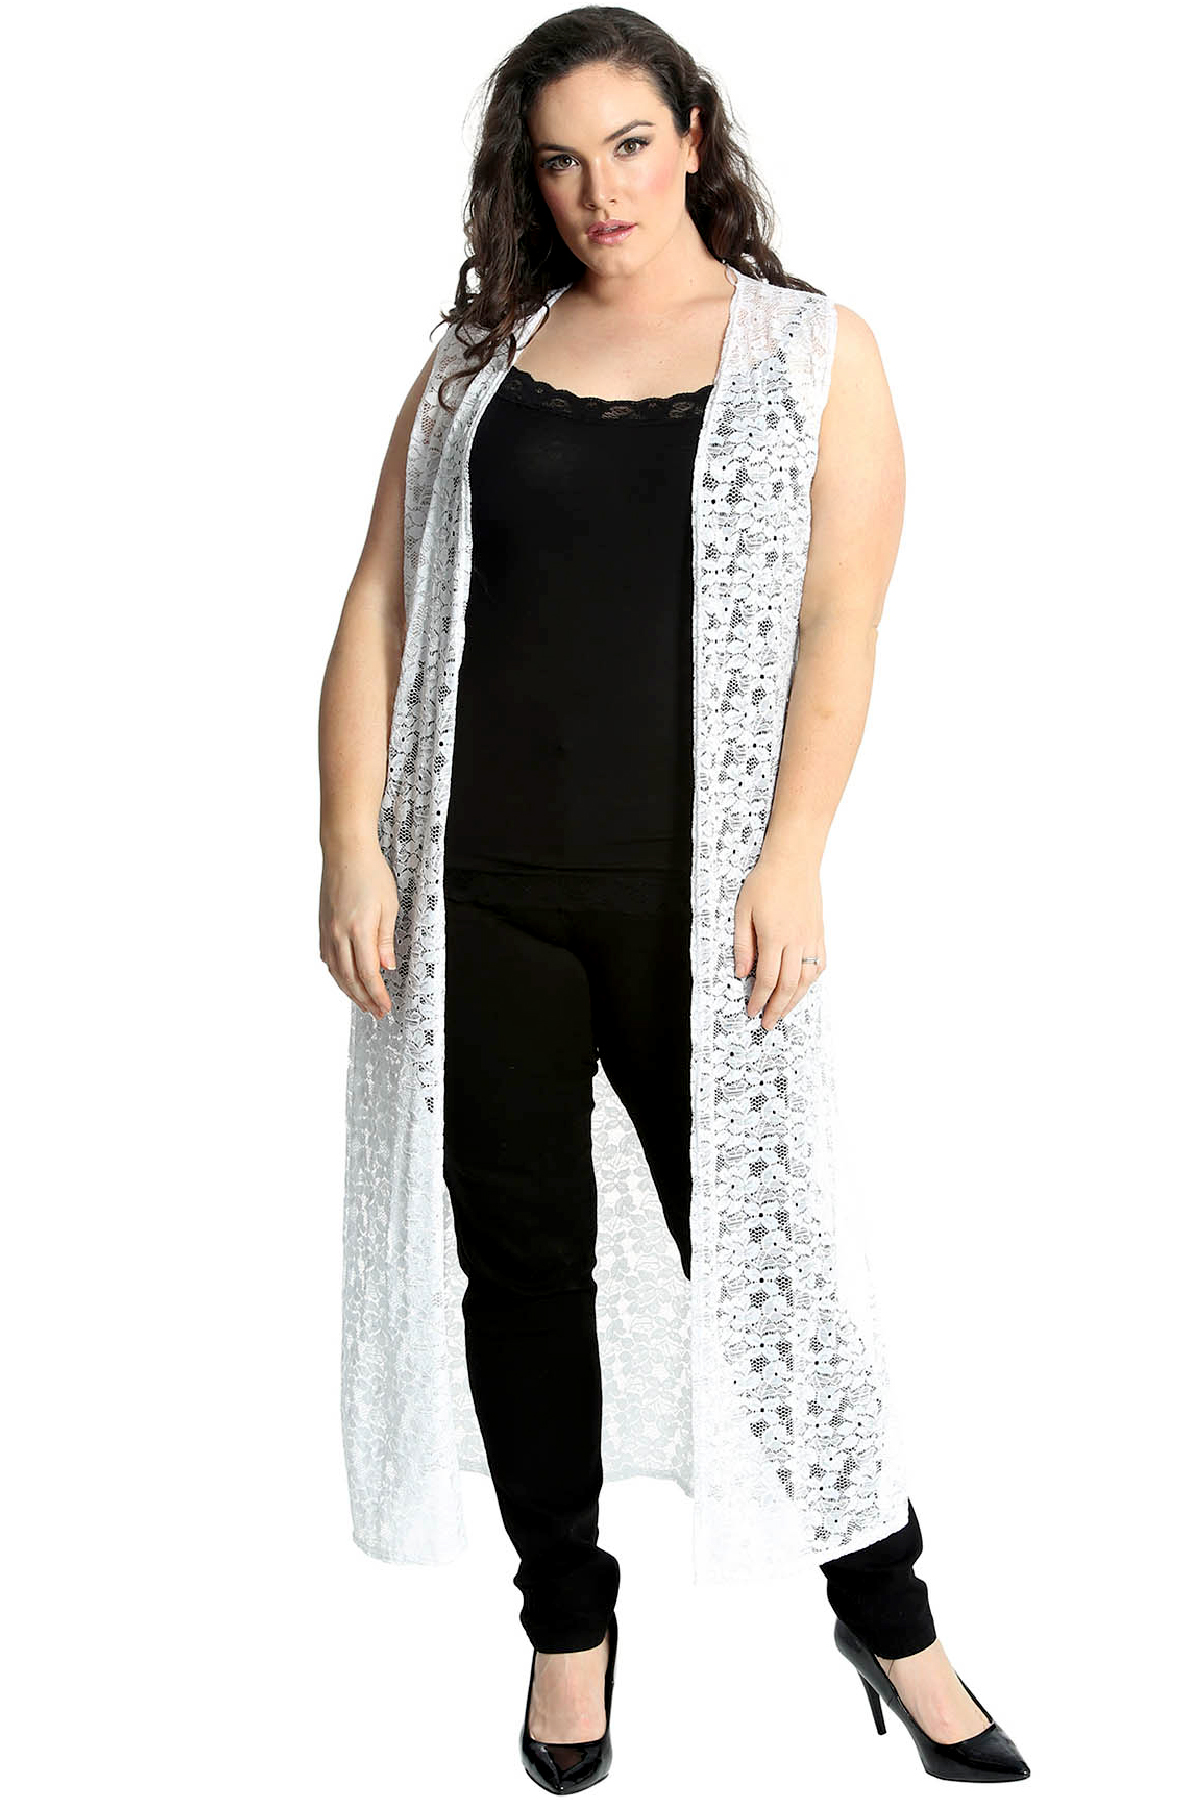 Fisher exchange size tops up lace women sweaters plus and women store